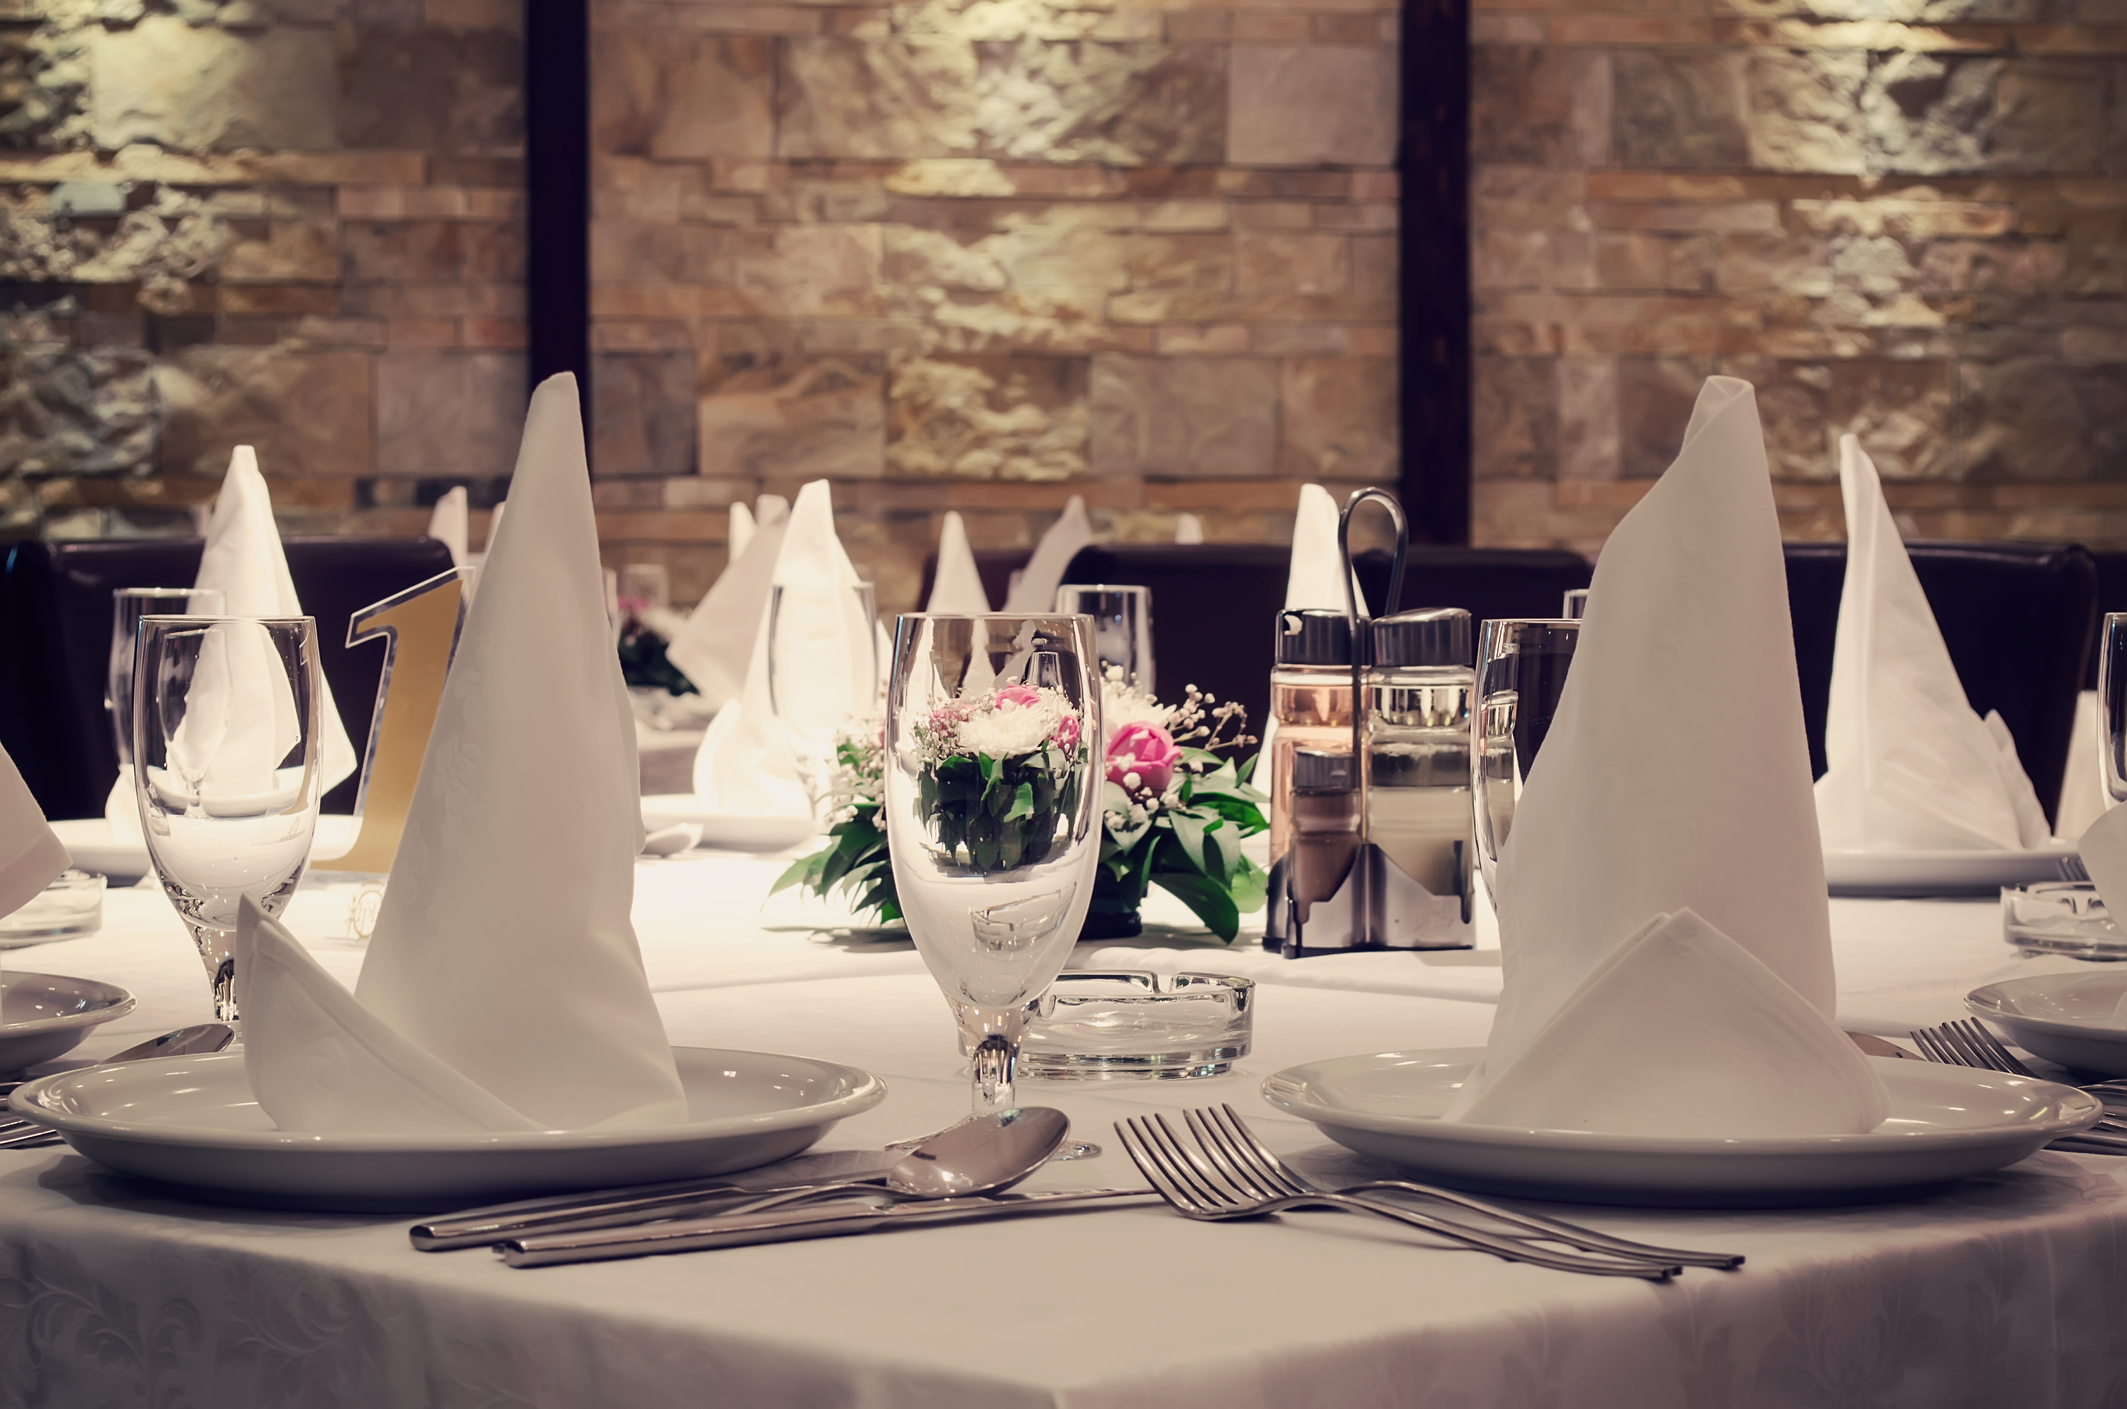 Photo of a restaurant table set for dinner, wedding day, celebrations or similar events.